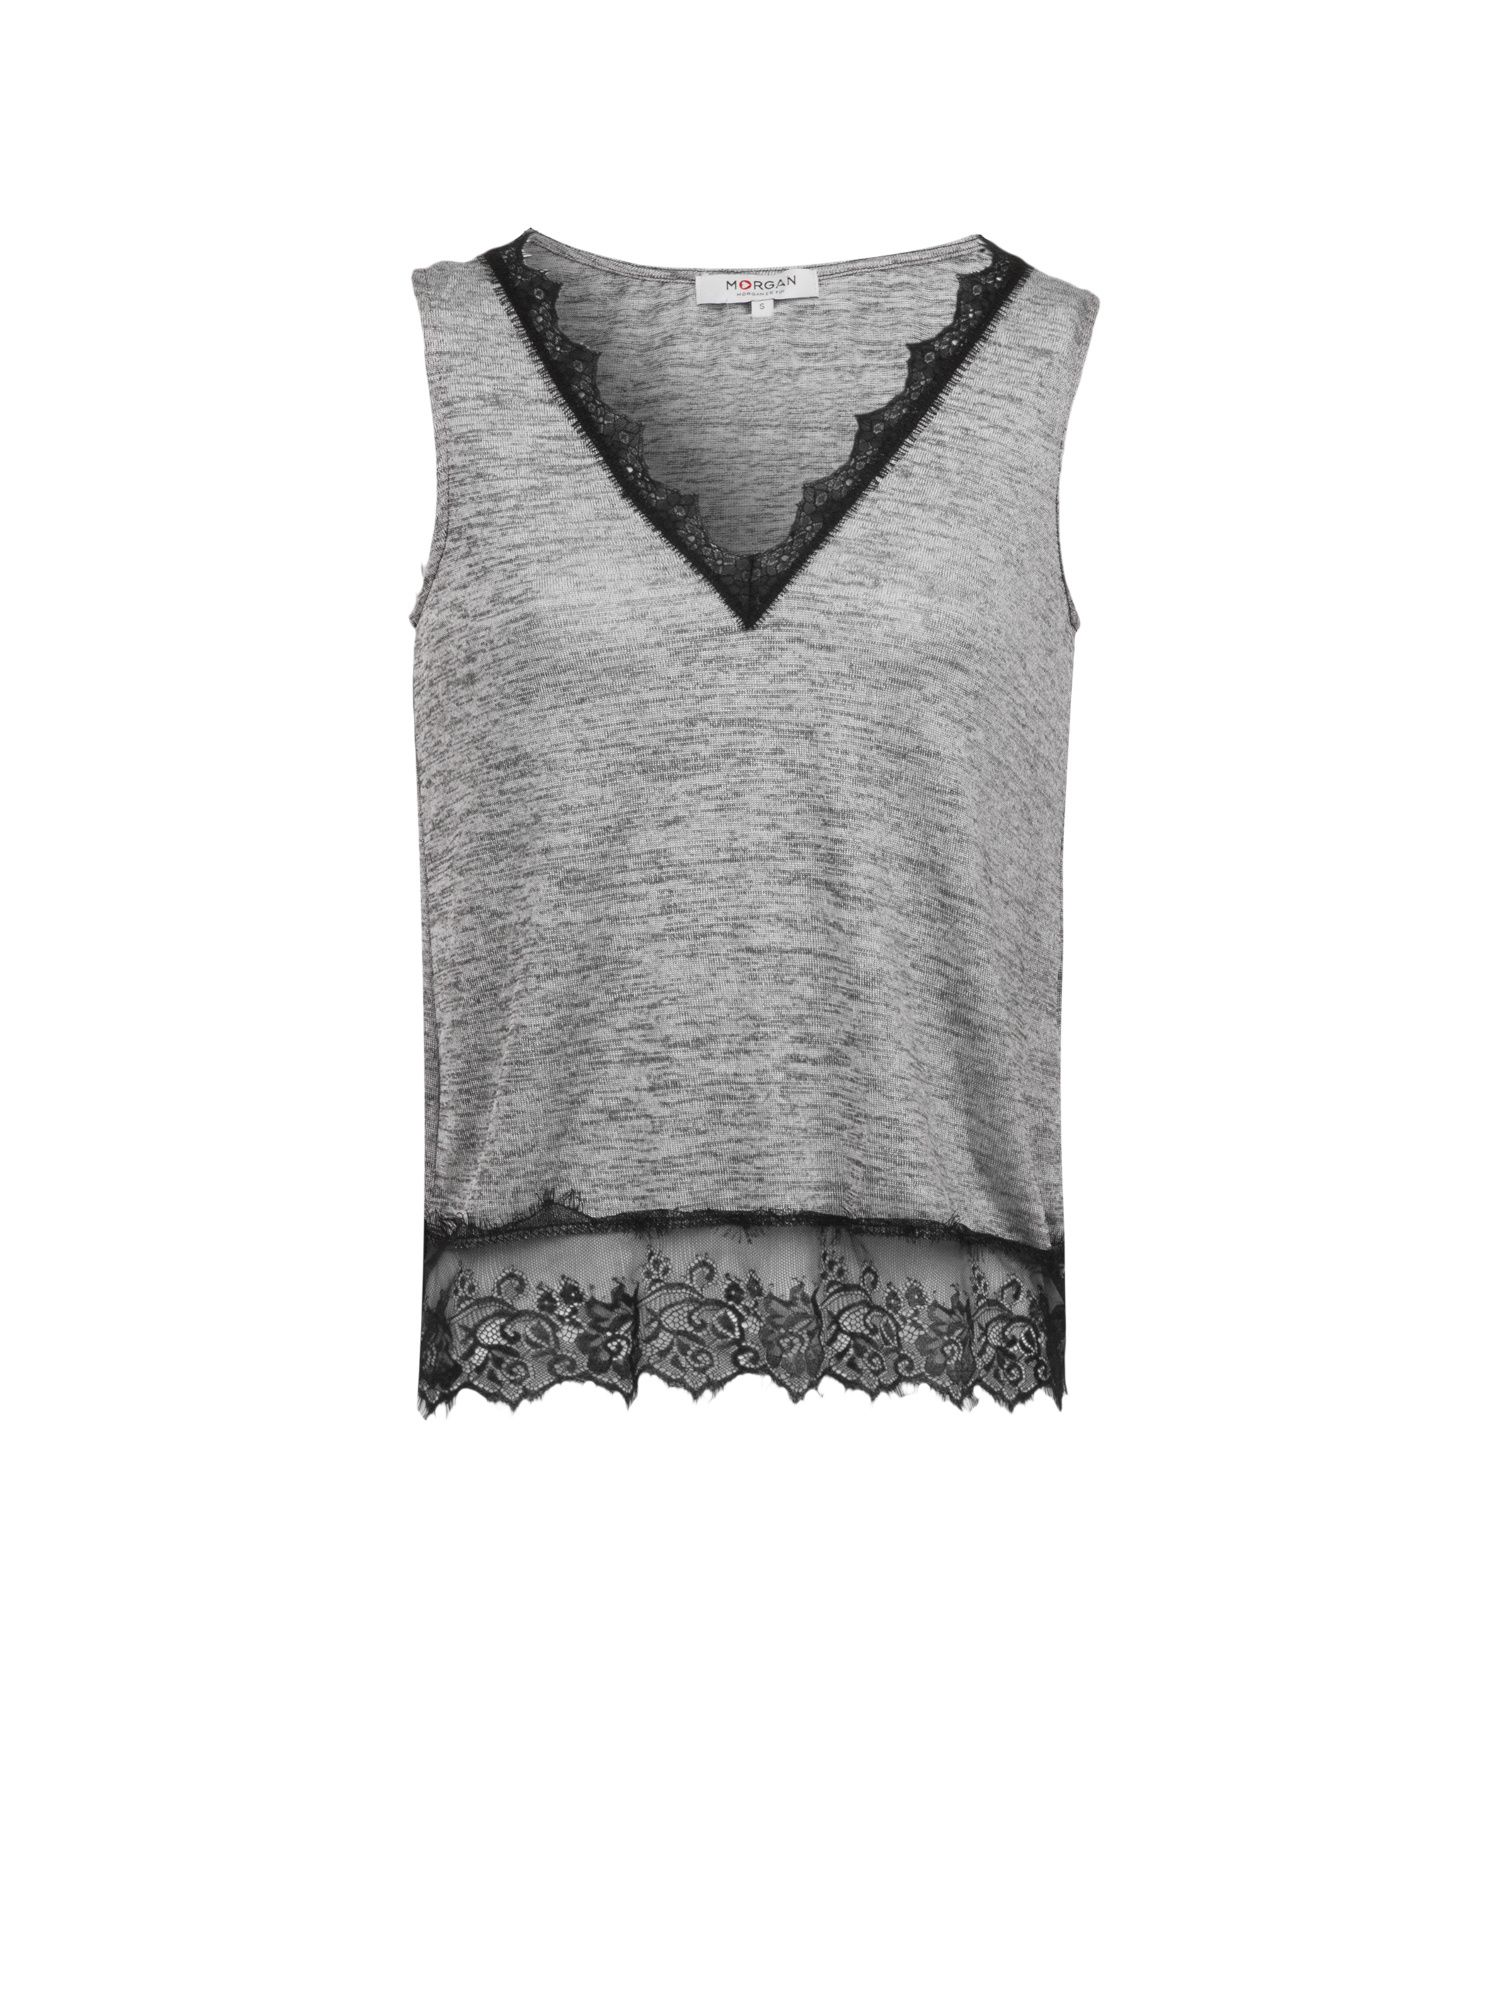 Morgan Heathered Knit And Lace Tank Top Grey